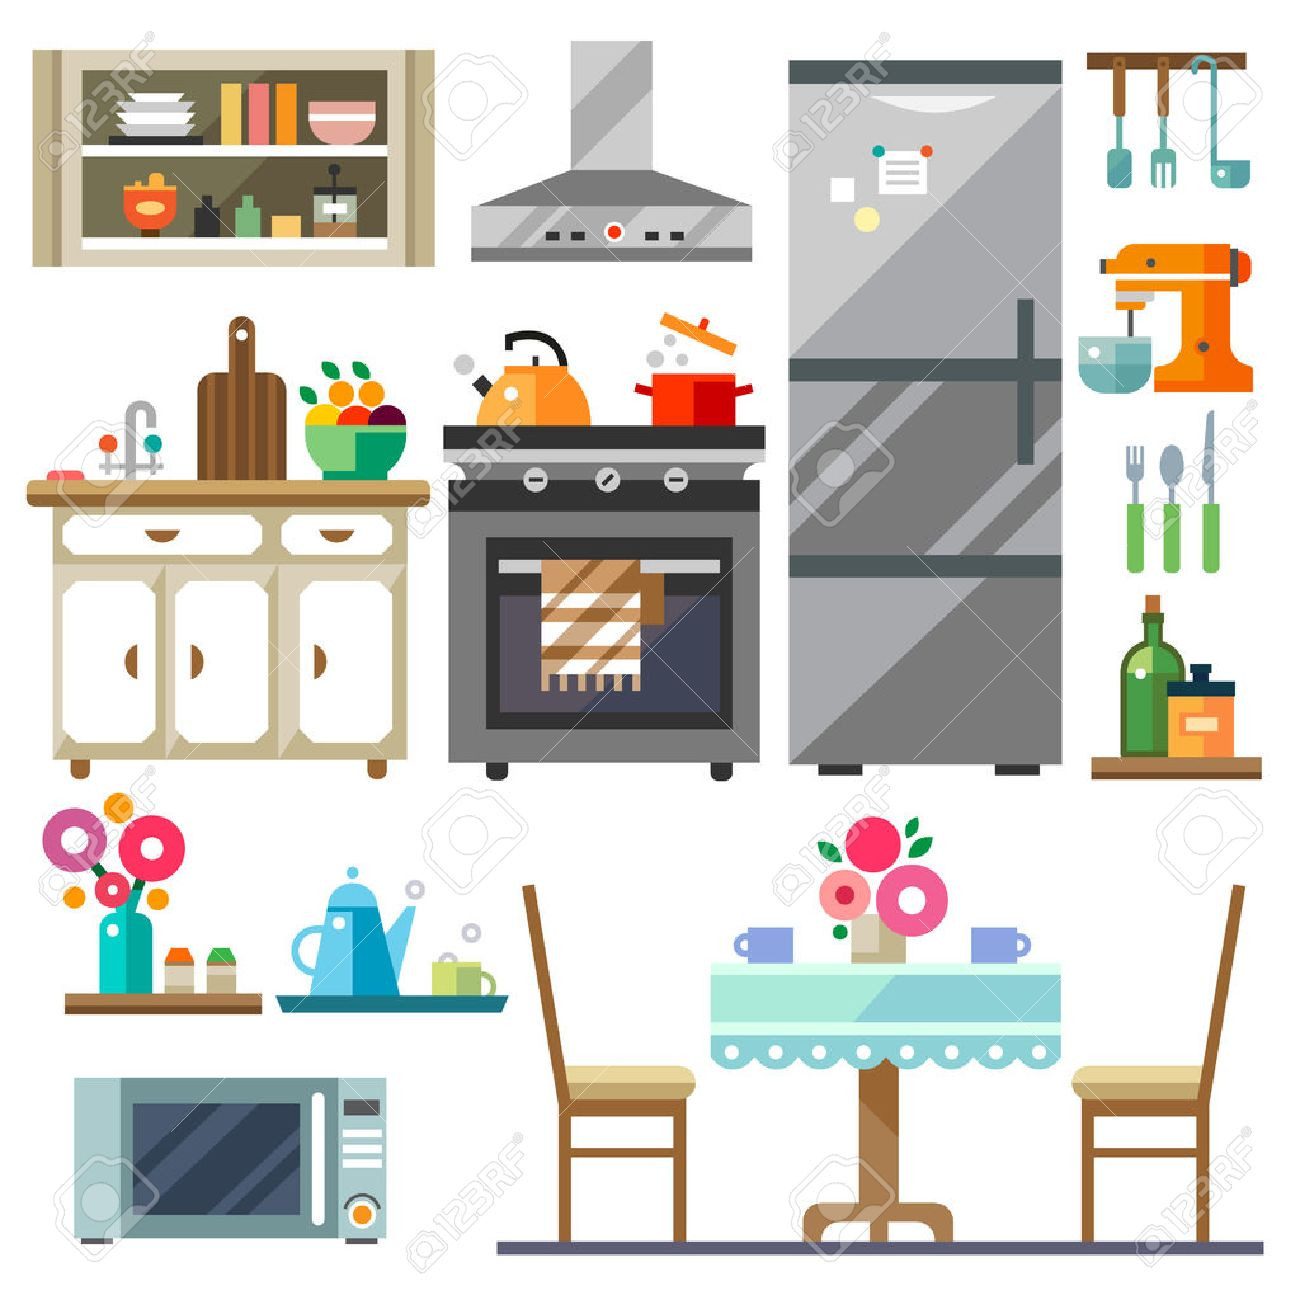 kitchen interior designset of elements refrigerator stove microwavecupboards dishes table